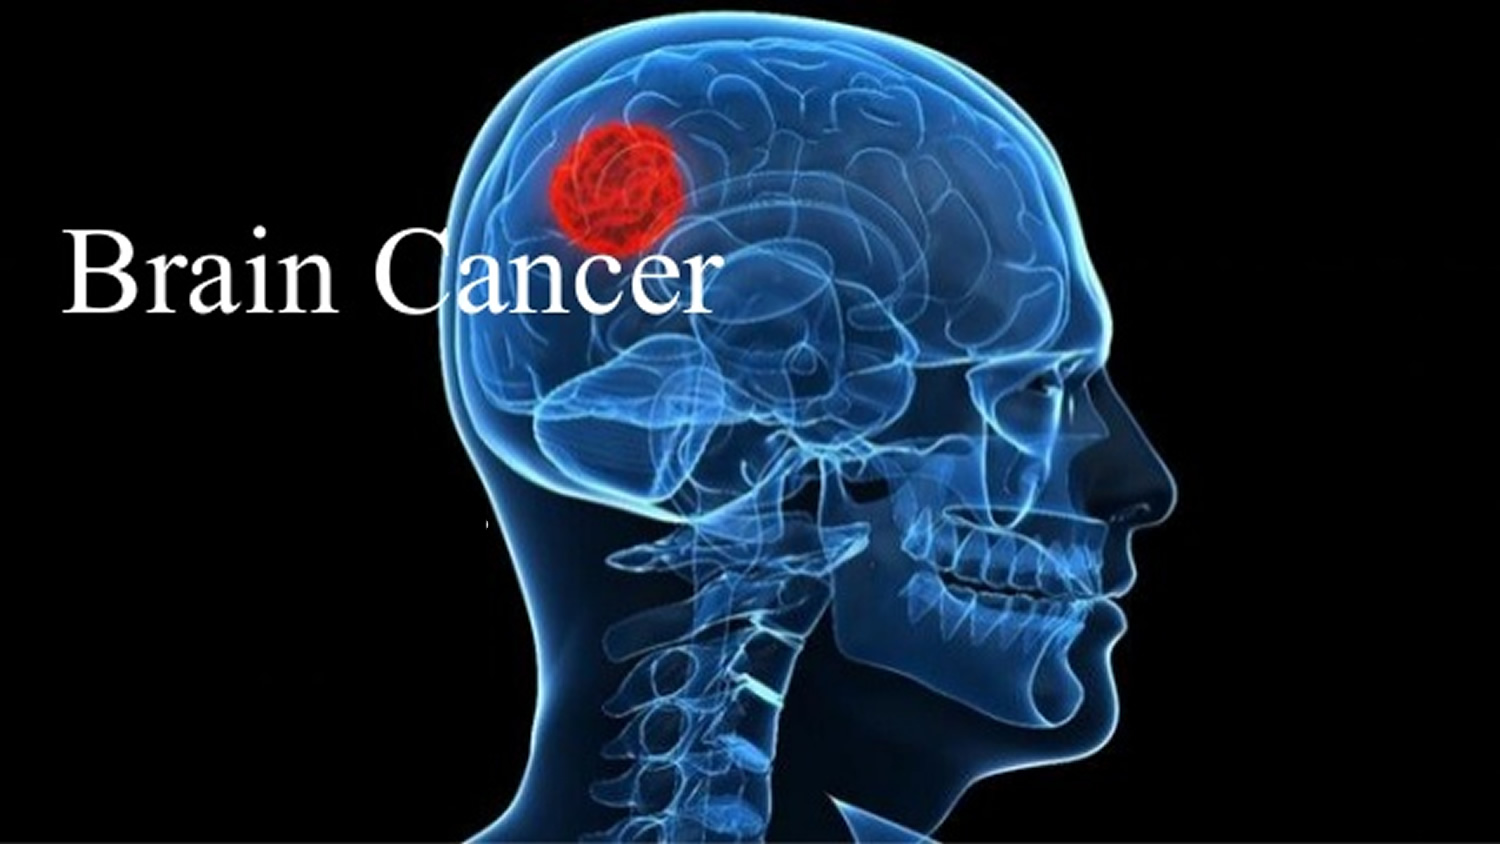 Brain Tumor Risk Factors advise